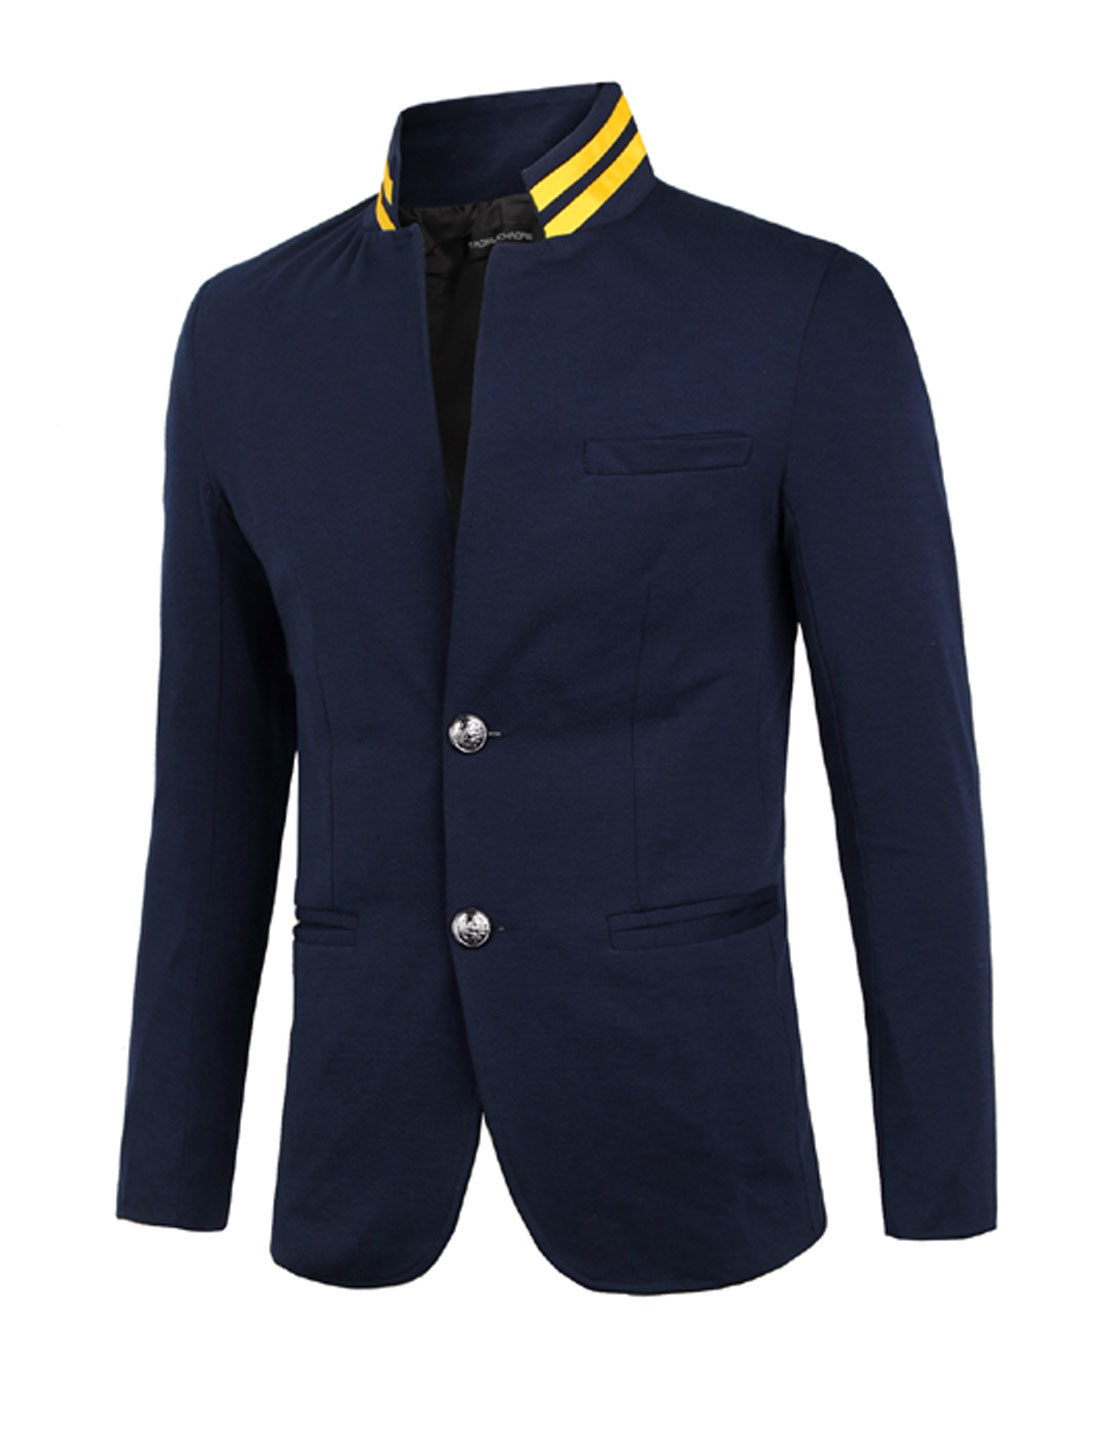 Man Long Sleeves One Button Closed Navy Blue Blazer Jacket S